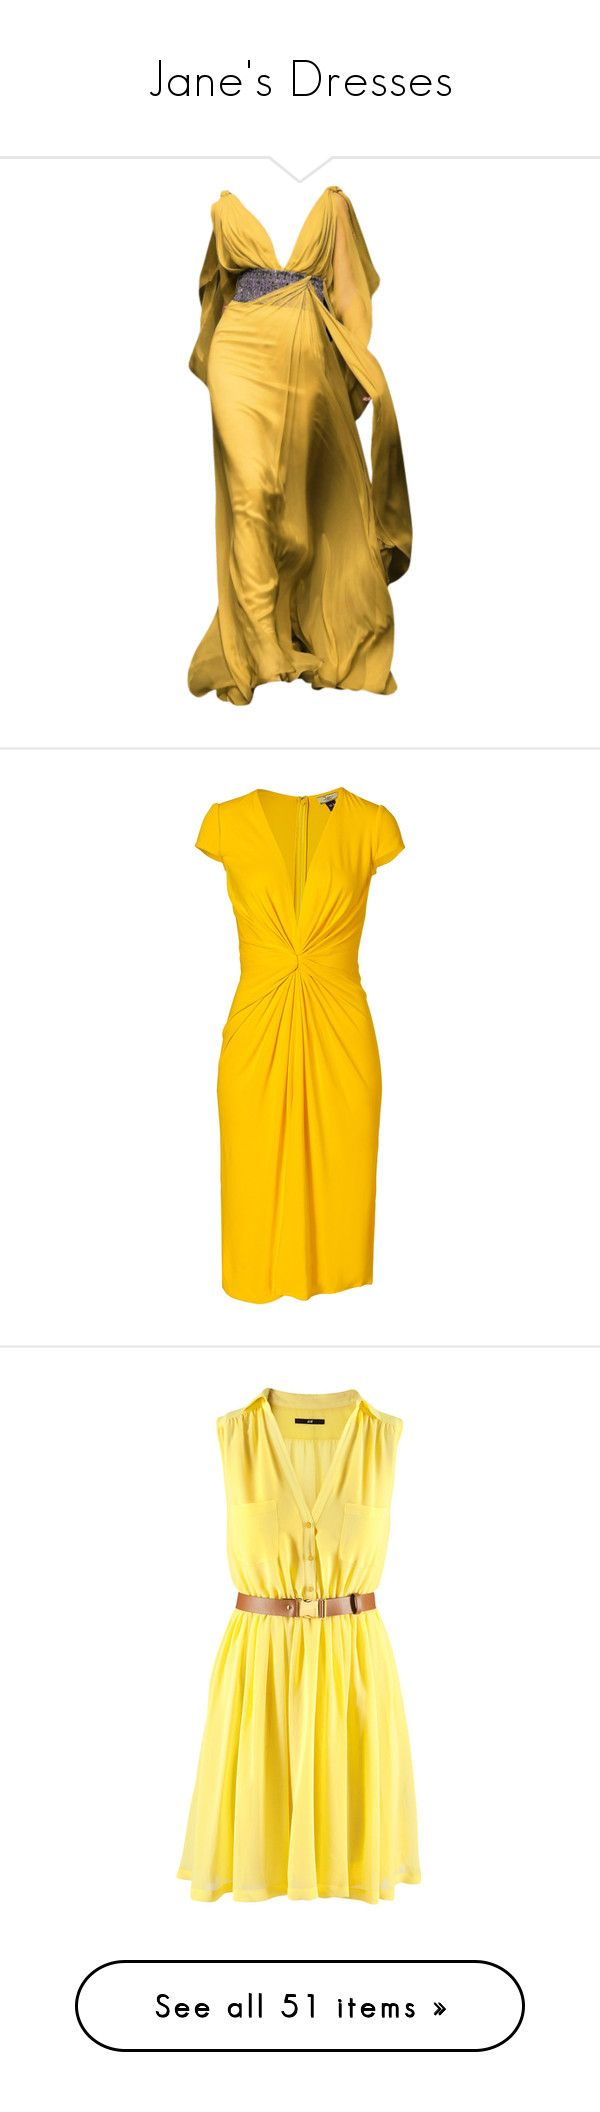 """""""Jane's Dresses"""" by disneydressing ❤ liked on Polyvore featuring dresses, gowns, long dress, vestidos, yellow evening gown, yellow dress, yellow ball gown, yellow gown, long dresses and yellow"""